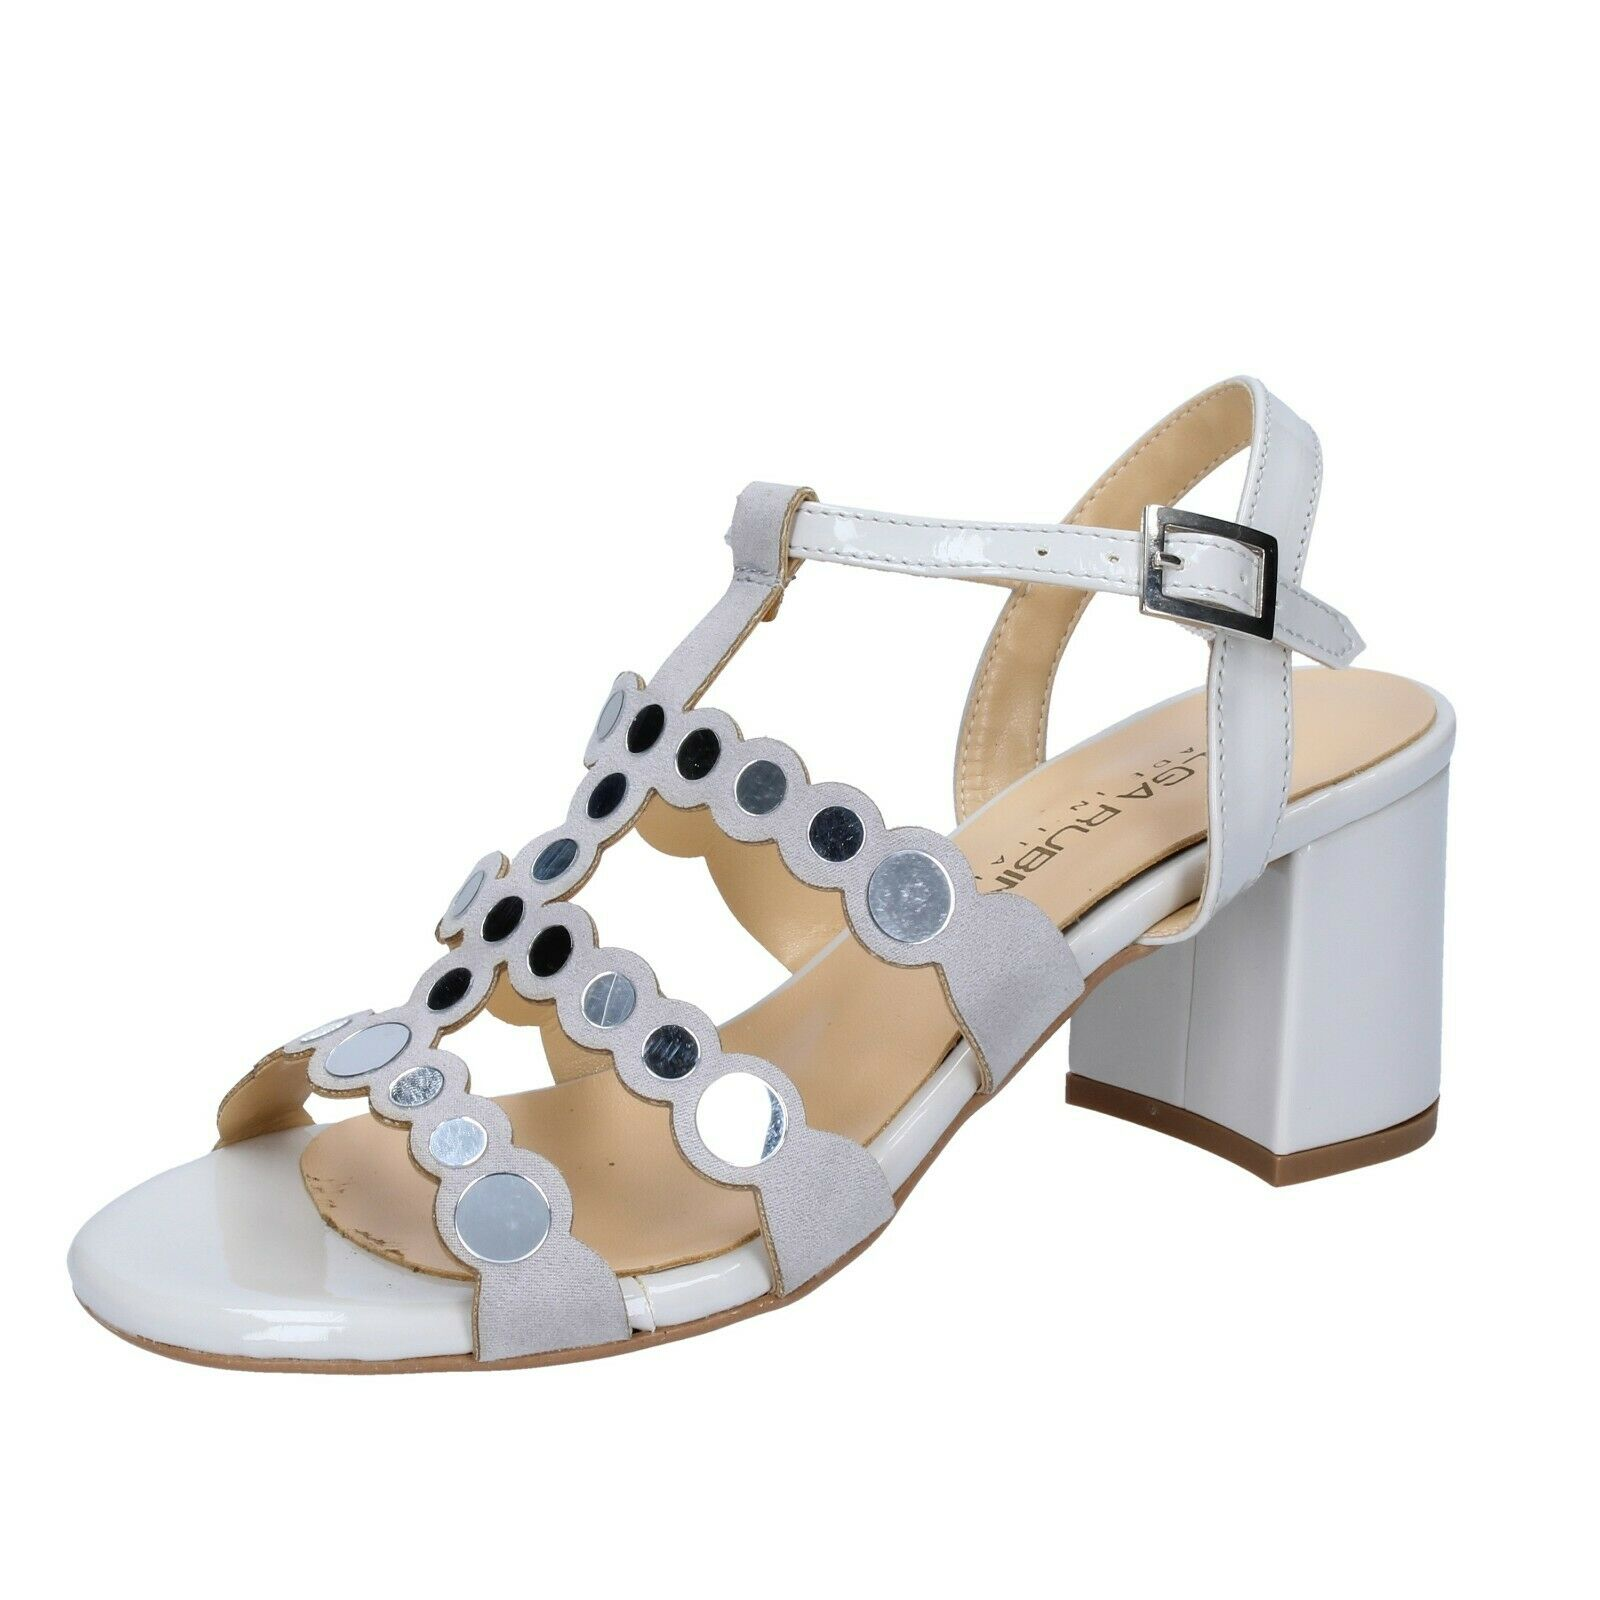 mujer zapatos Olga Rubini 36 EU Sandals gris Patent Suede BS375-36